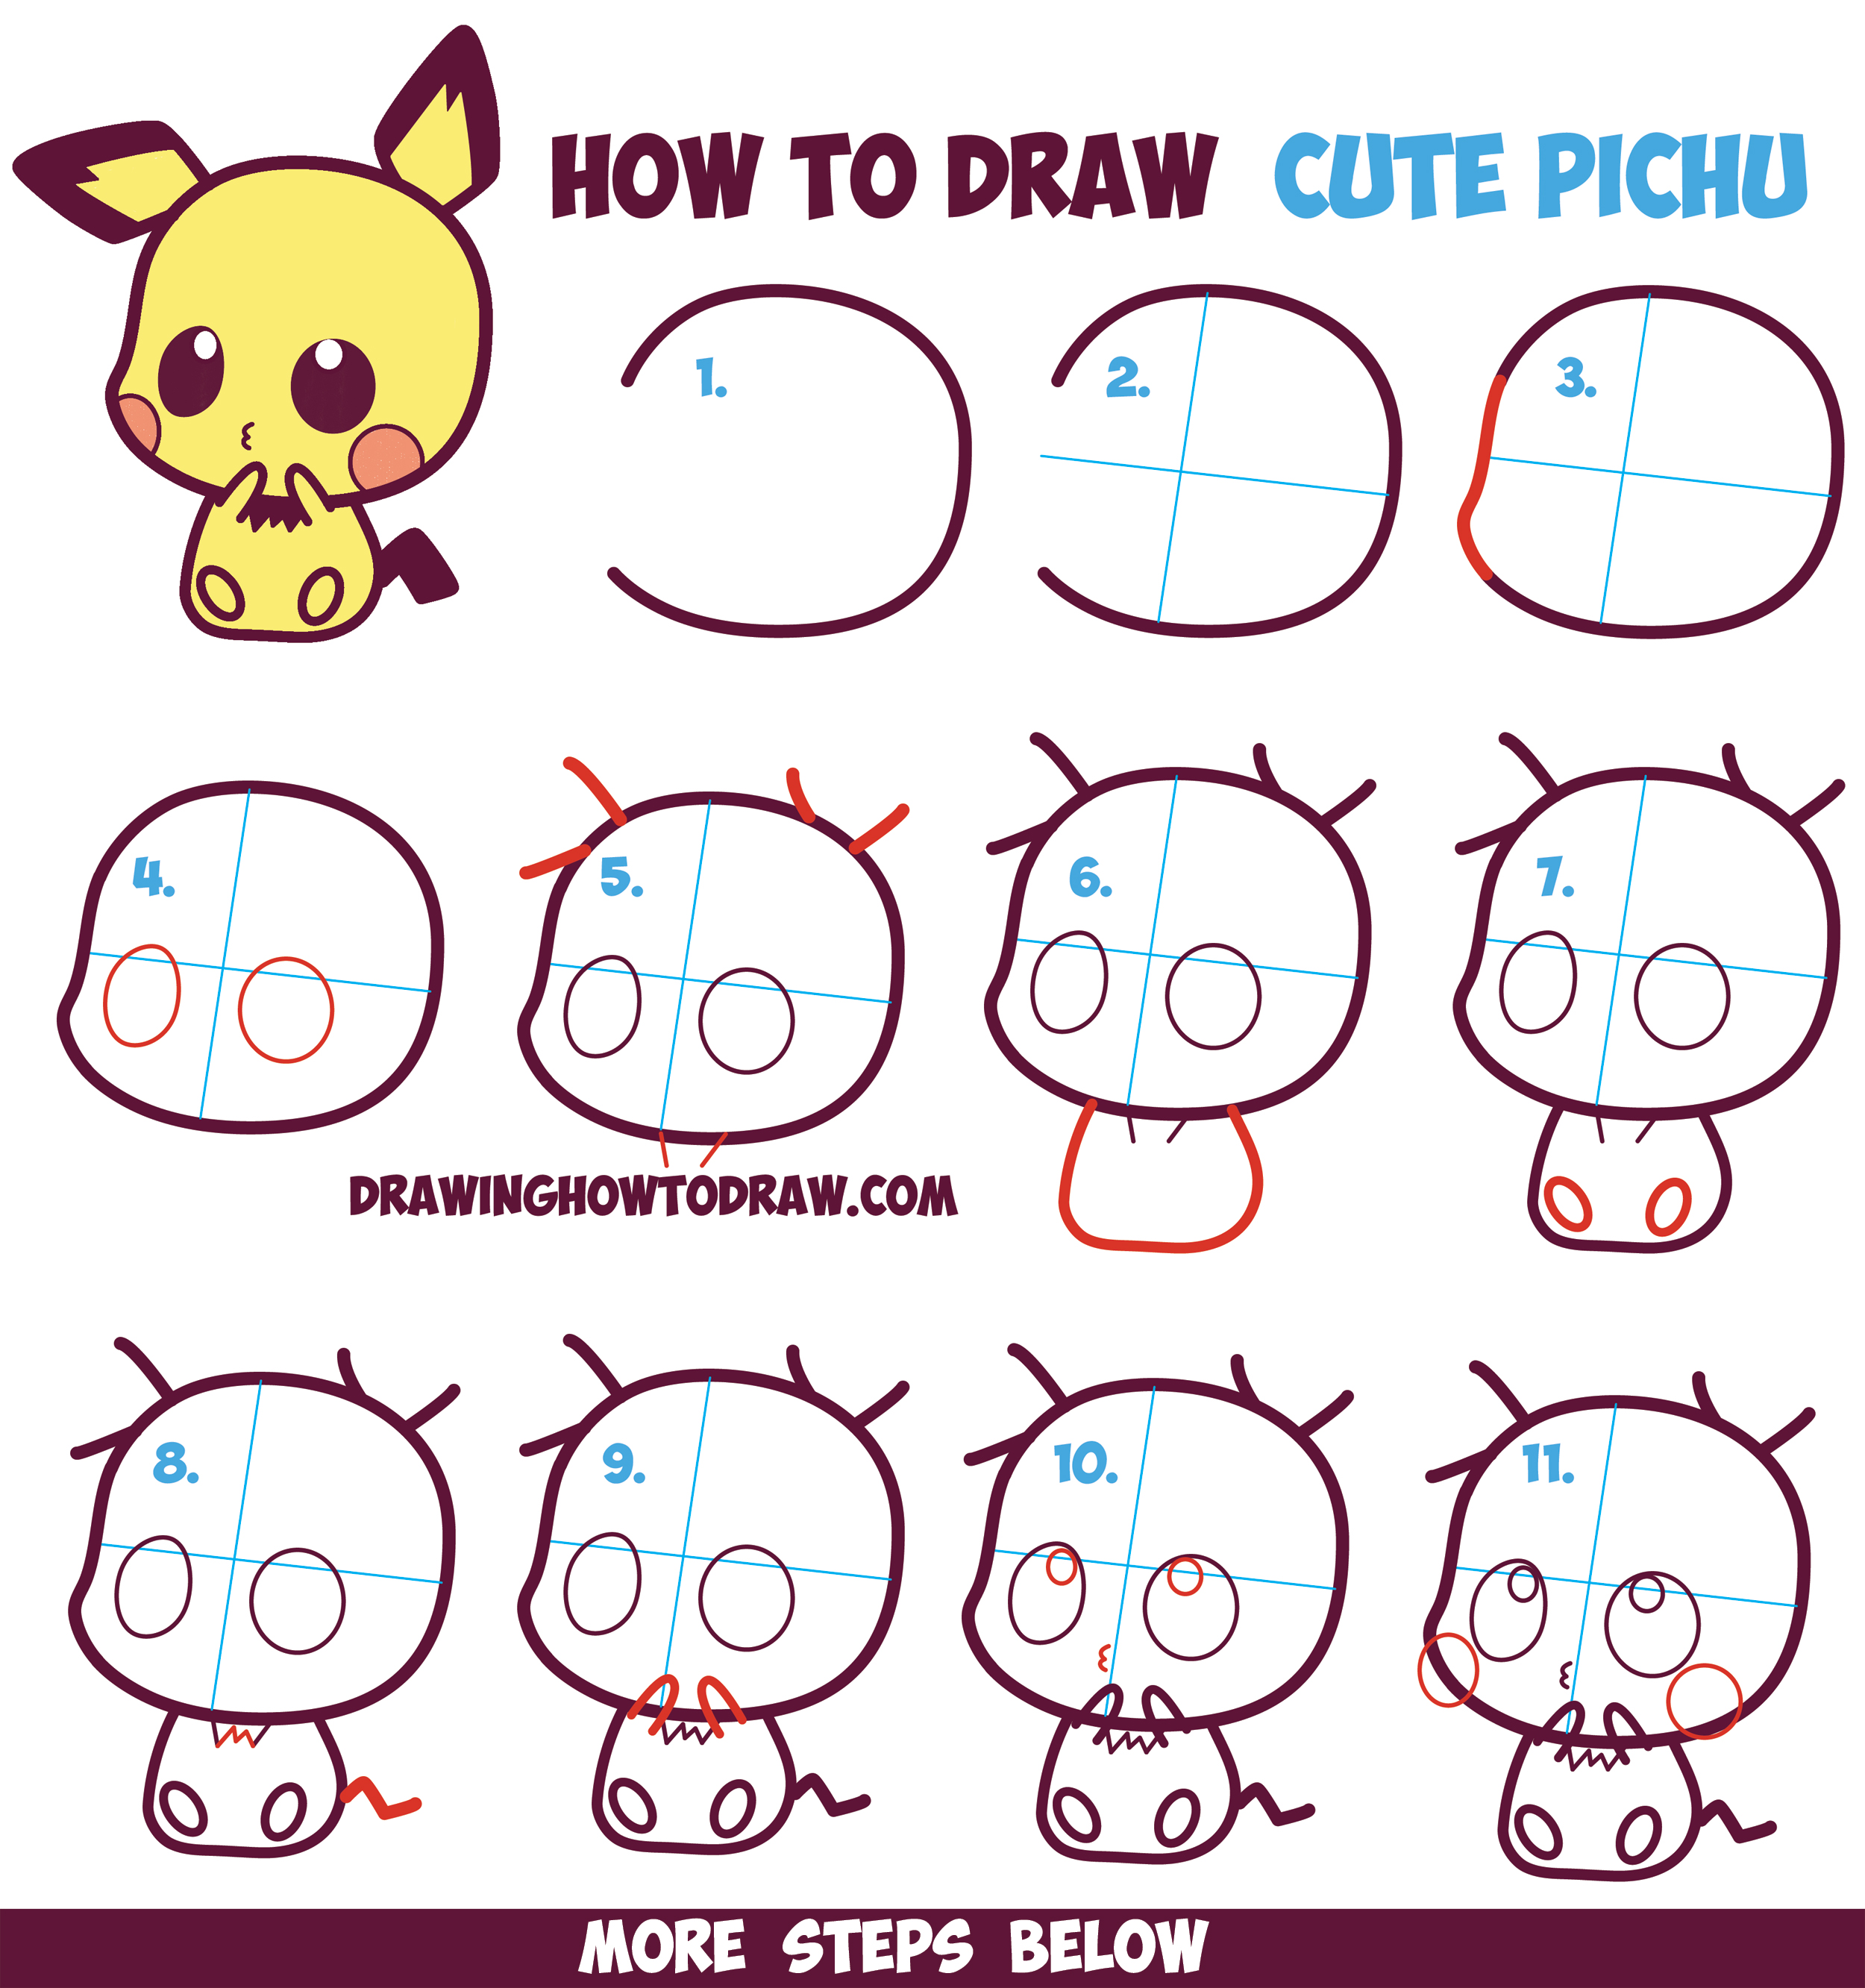 Uncategorized Drawing Lesson For Kids how to draw cute kawaii chibi pichu from pokemon in easy step by step